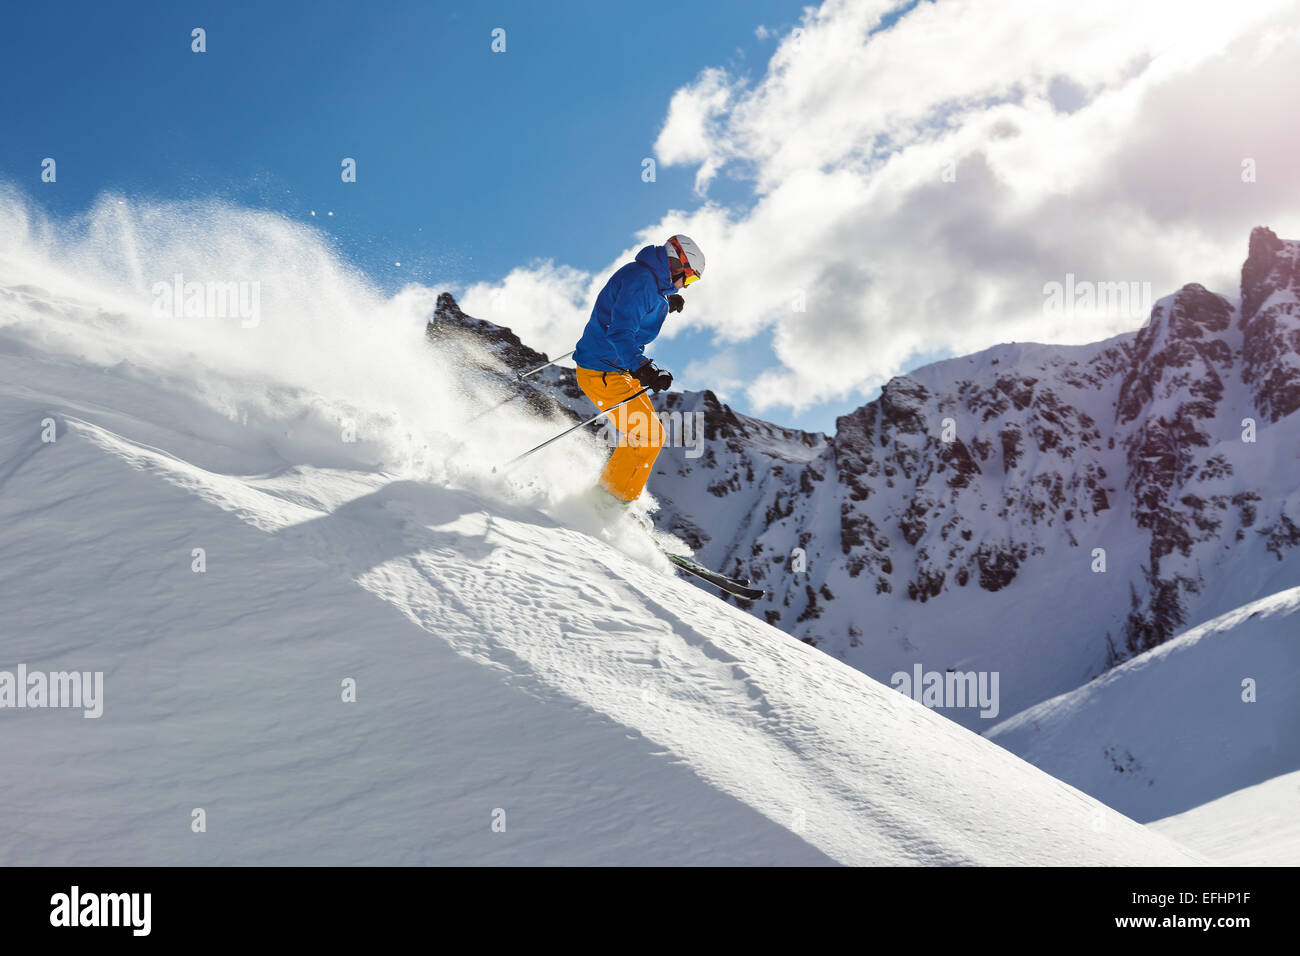 Male skier on downhill freeride with sun and mountain view - Stock Image